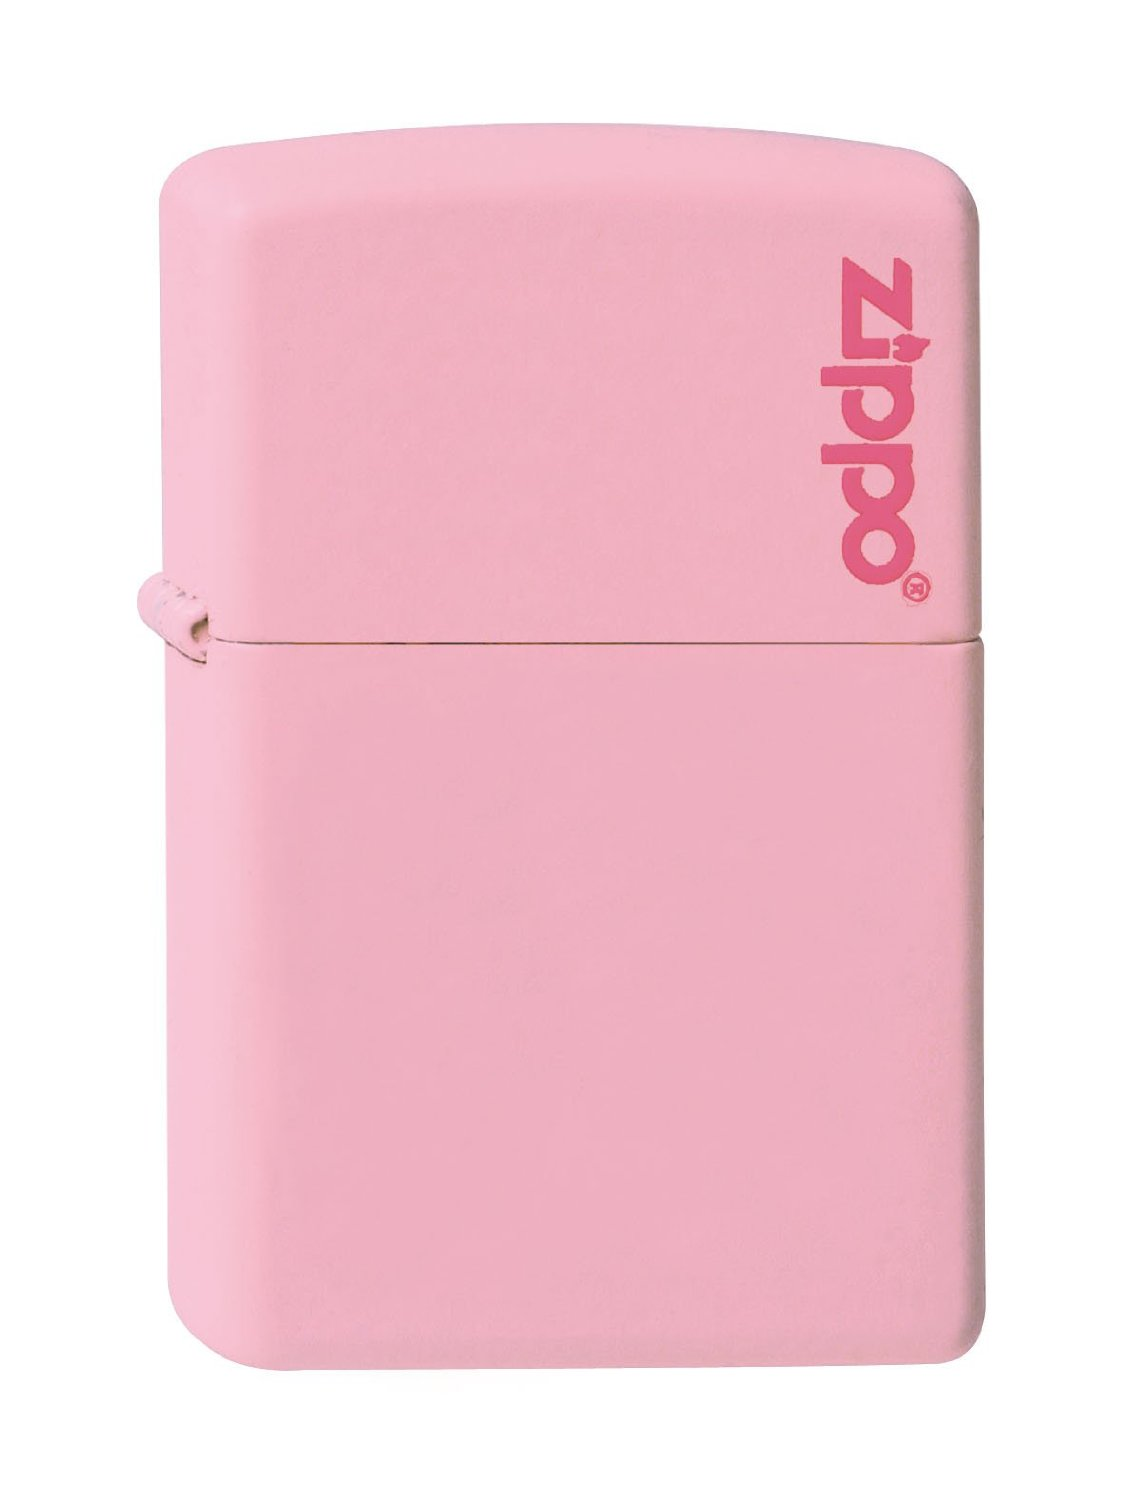 Zippo Classic 218 Black Matte 238zl Pink Windproof Lighter With Logo